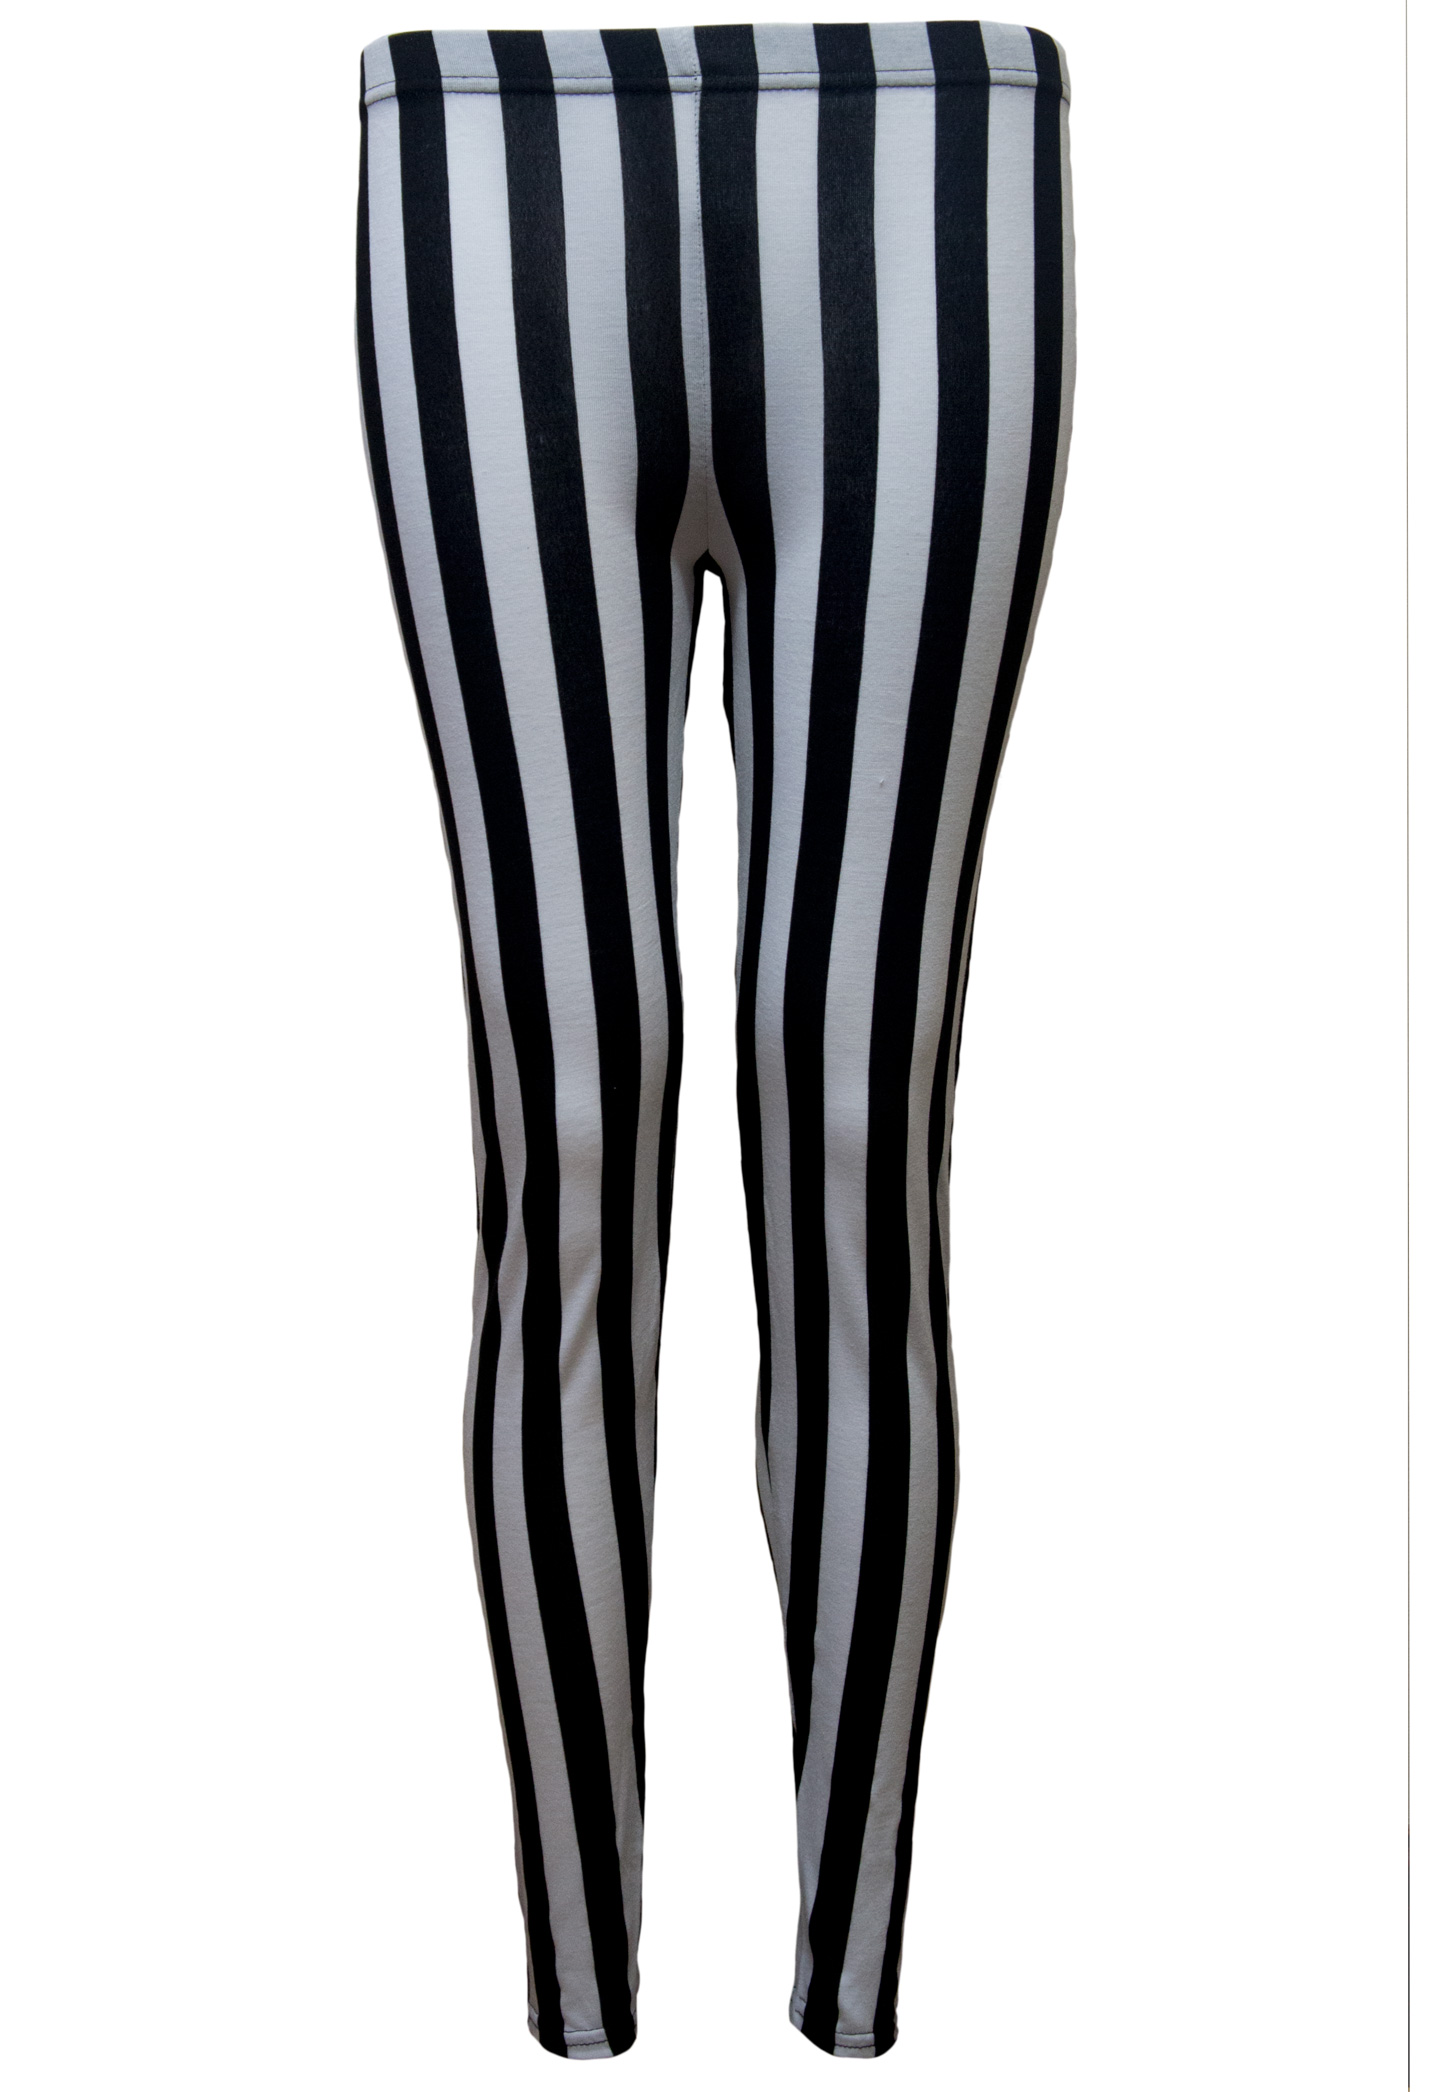 200af421bd2d2 Black Leggings/Tights - Black Vertical Striped Leggings | UsTrendy